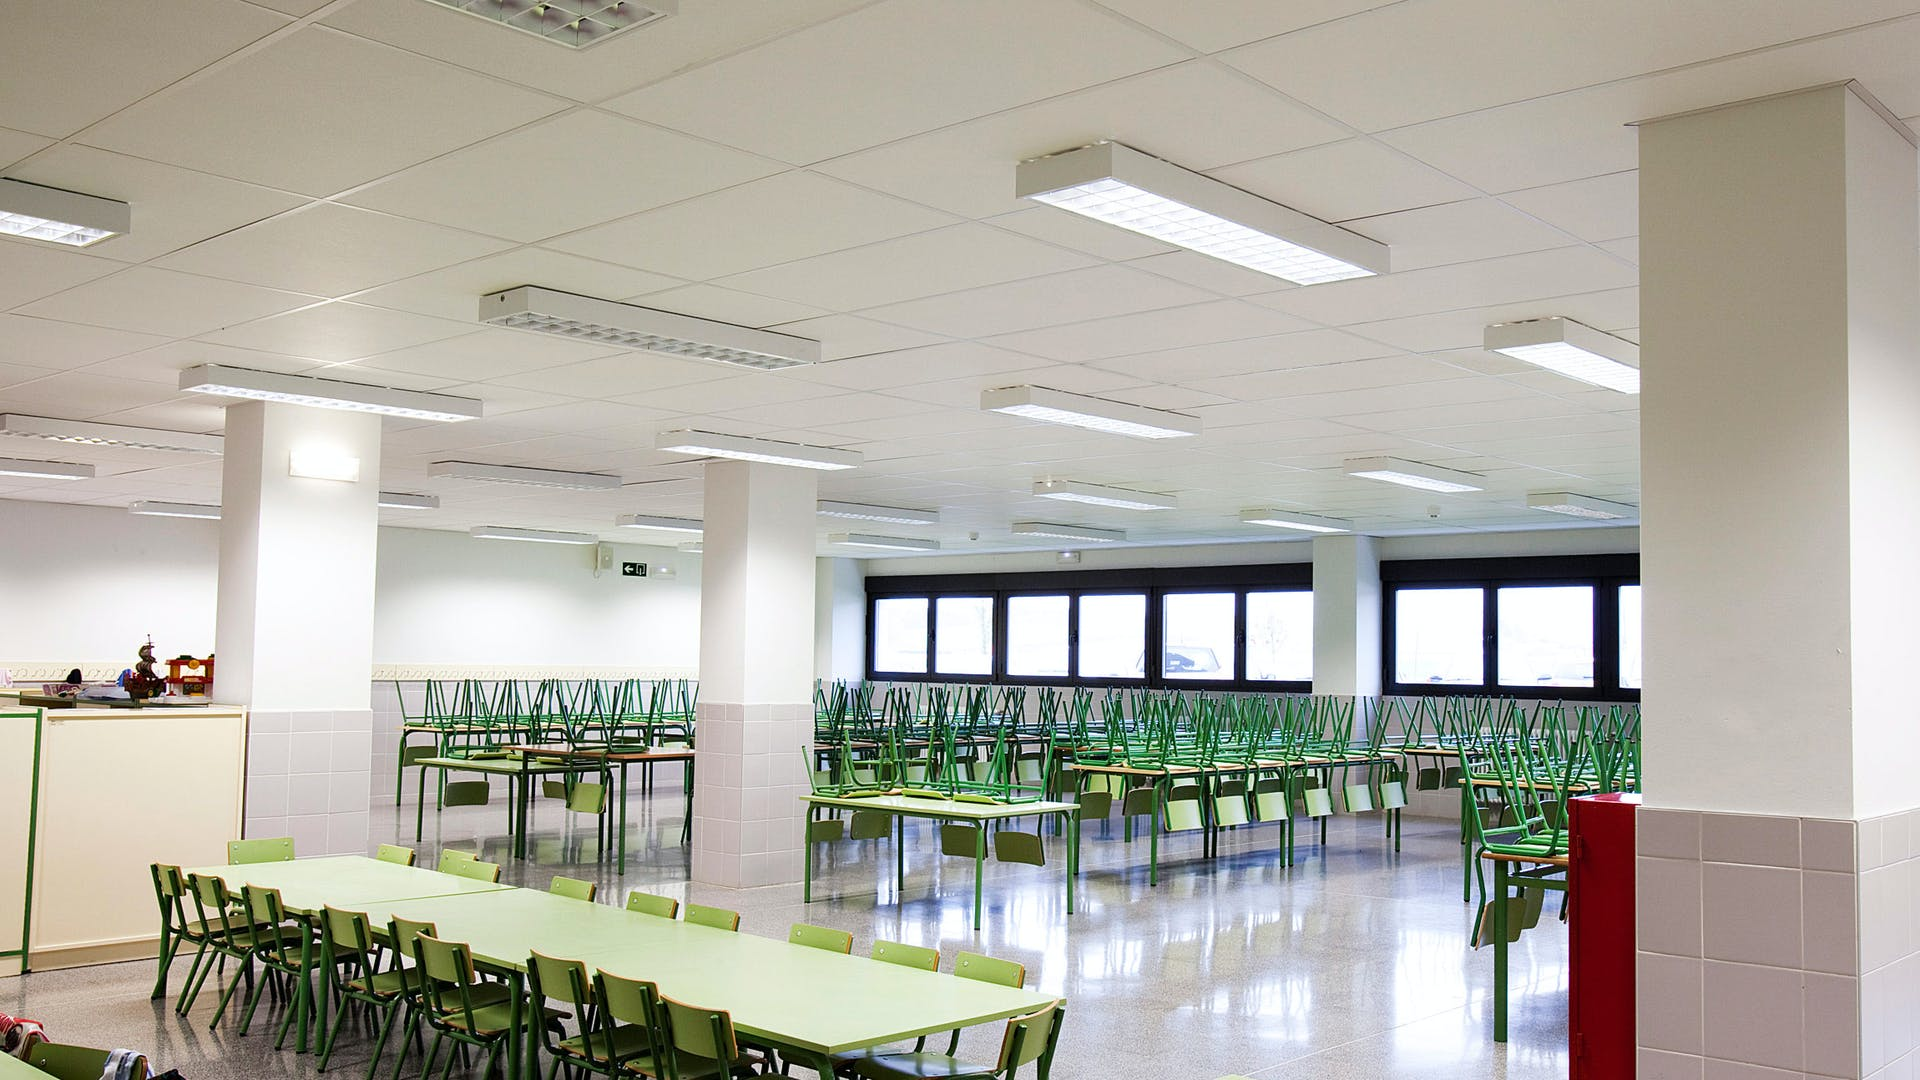 Acoustic ceilings with Rockfon Boxer acoustic ceiling tiles (ideal for schools and sports facilities, excellent sound absorption)